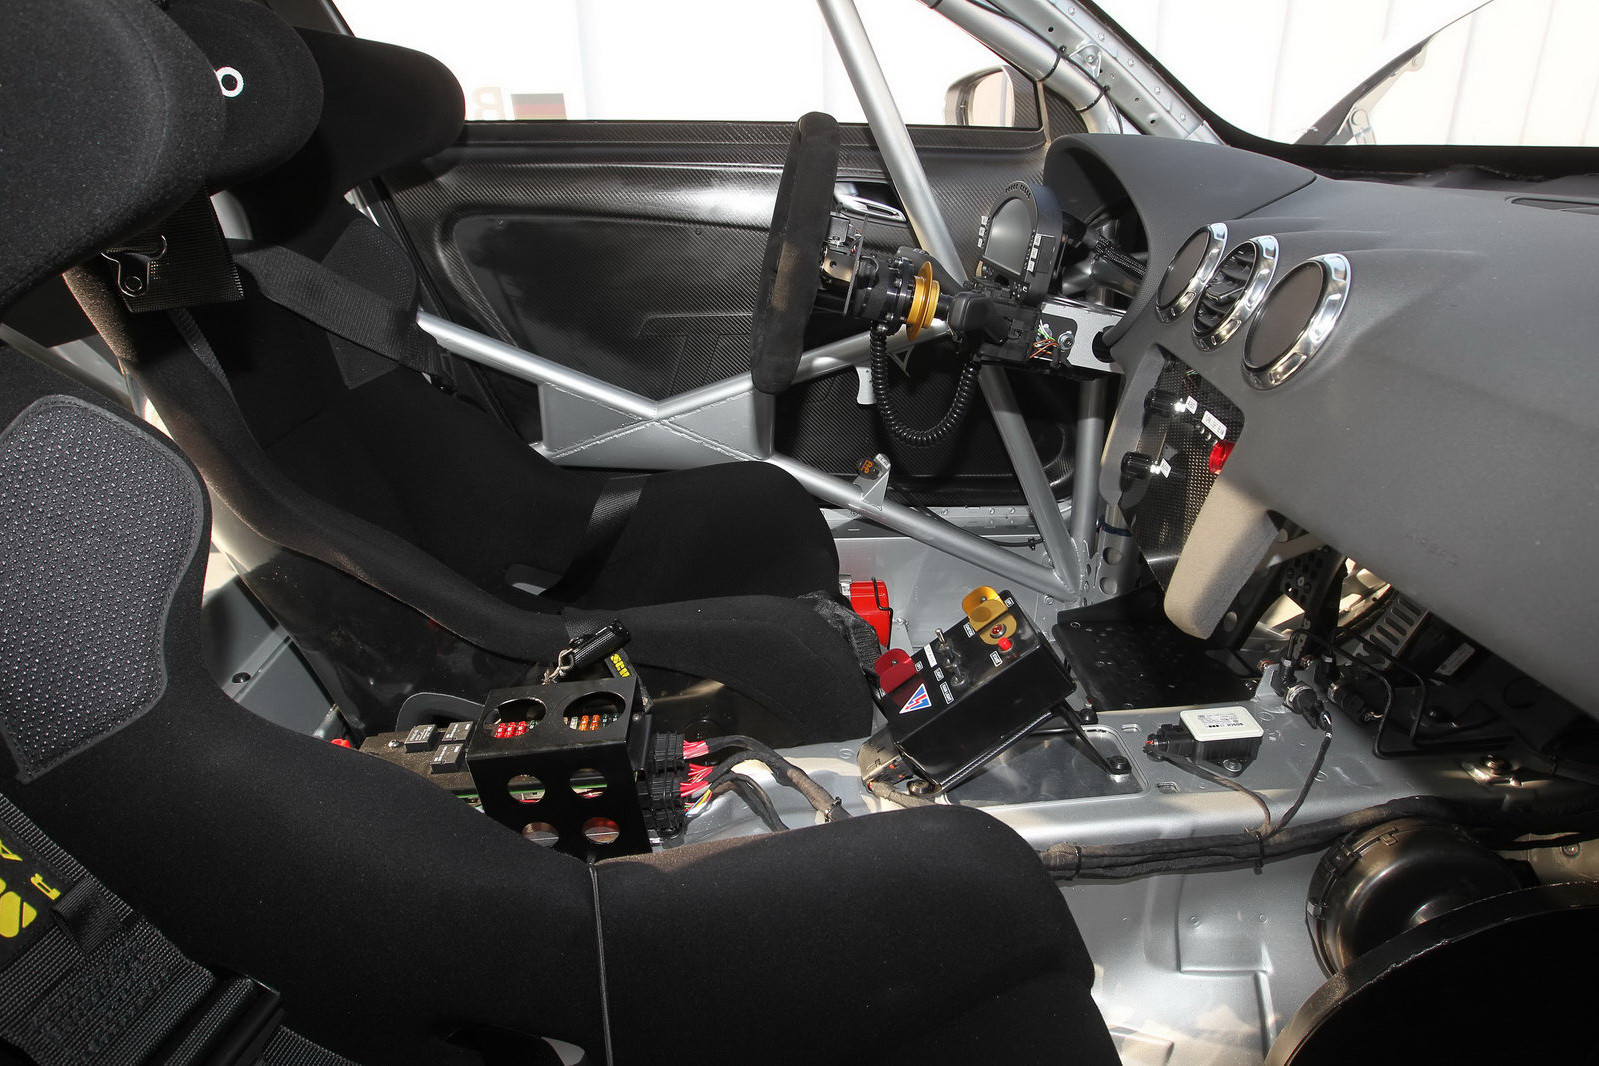 Best car interior of all time???